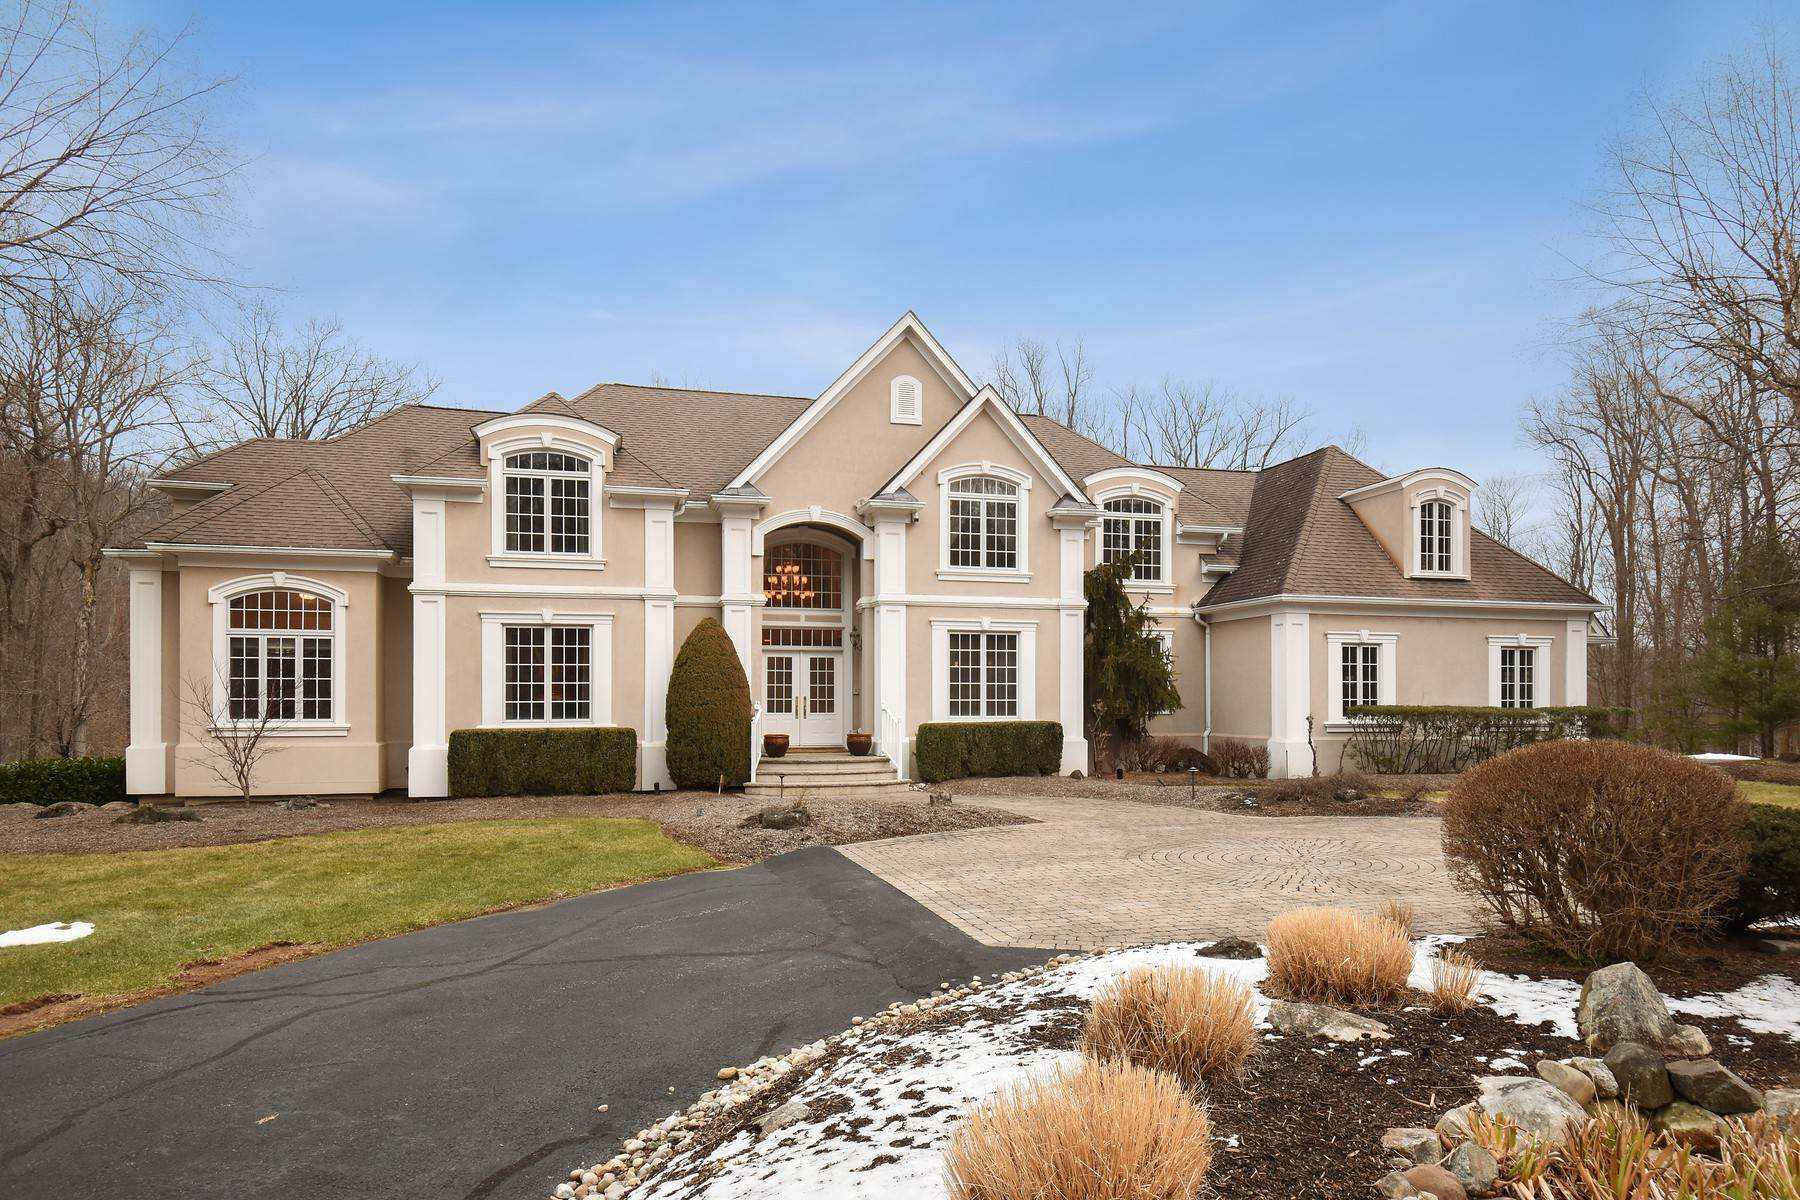 Single Family Homes for Sale at 100 Fayson Lake Road Kinnelon 100 Fayson Lake Road Kinnelon, New Jersey 07405 United States